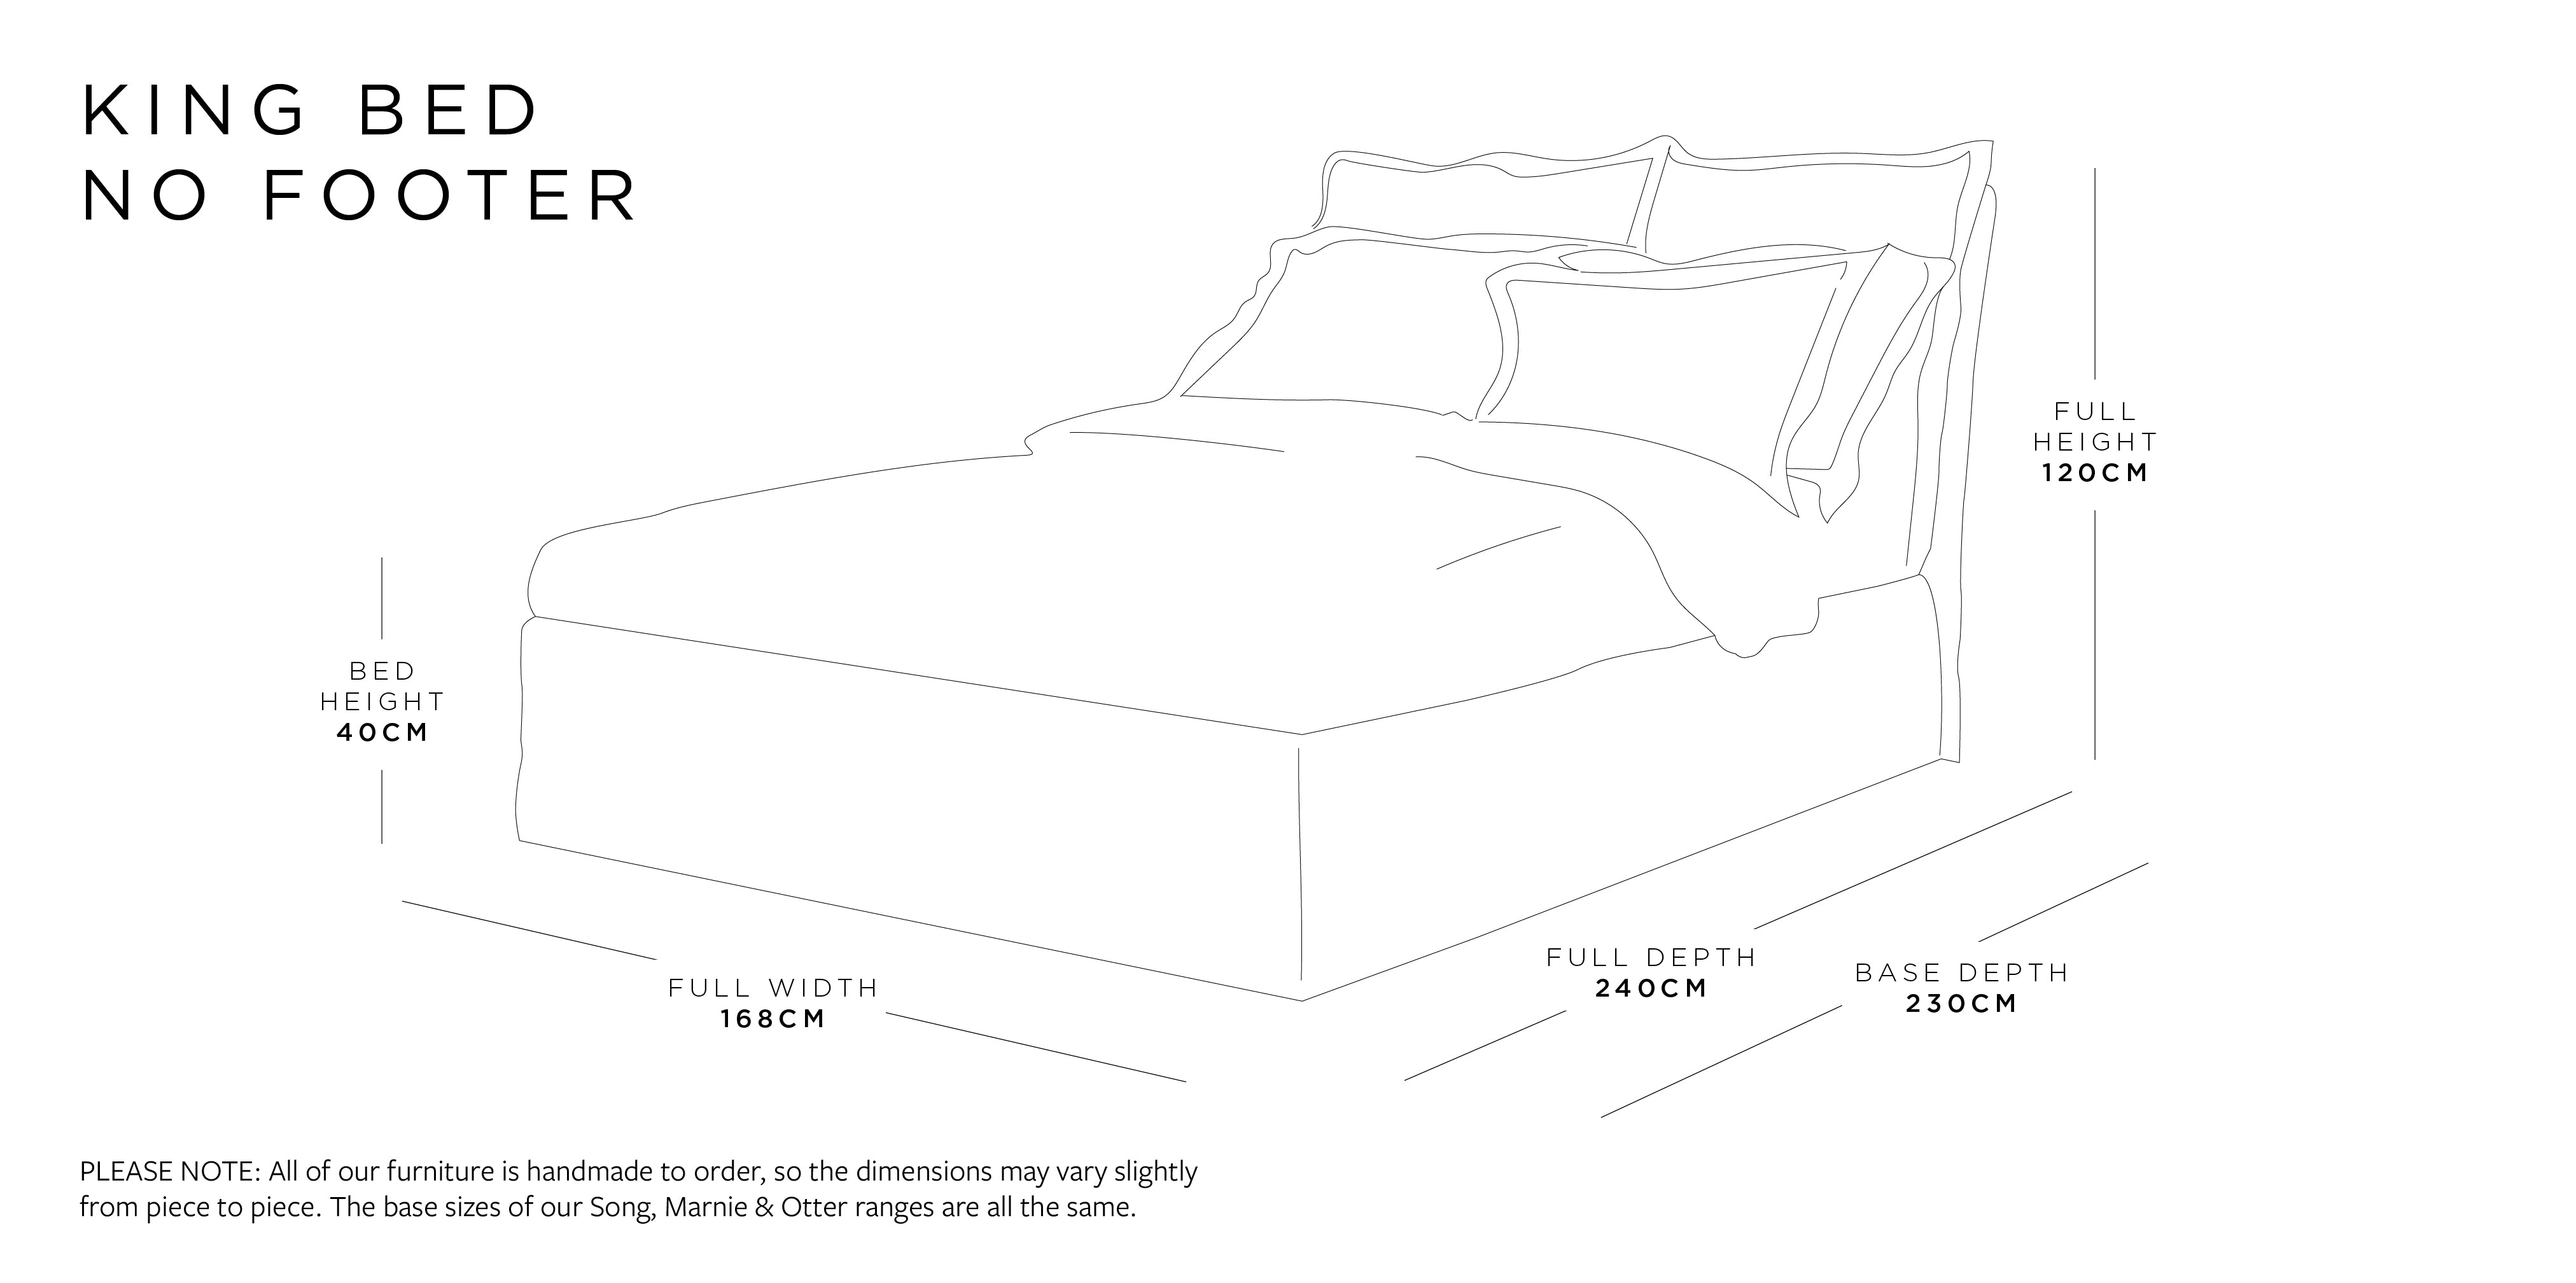 King Bed Without Footer Dimensions